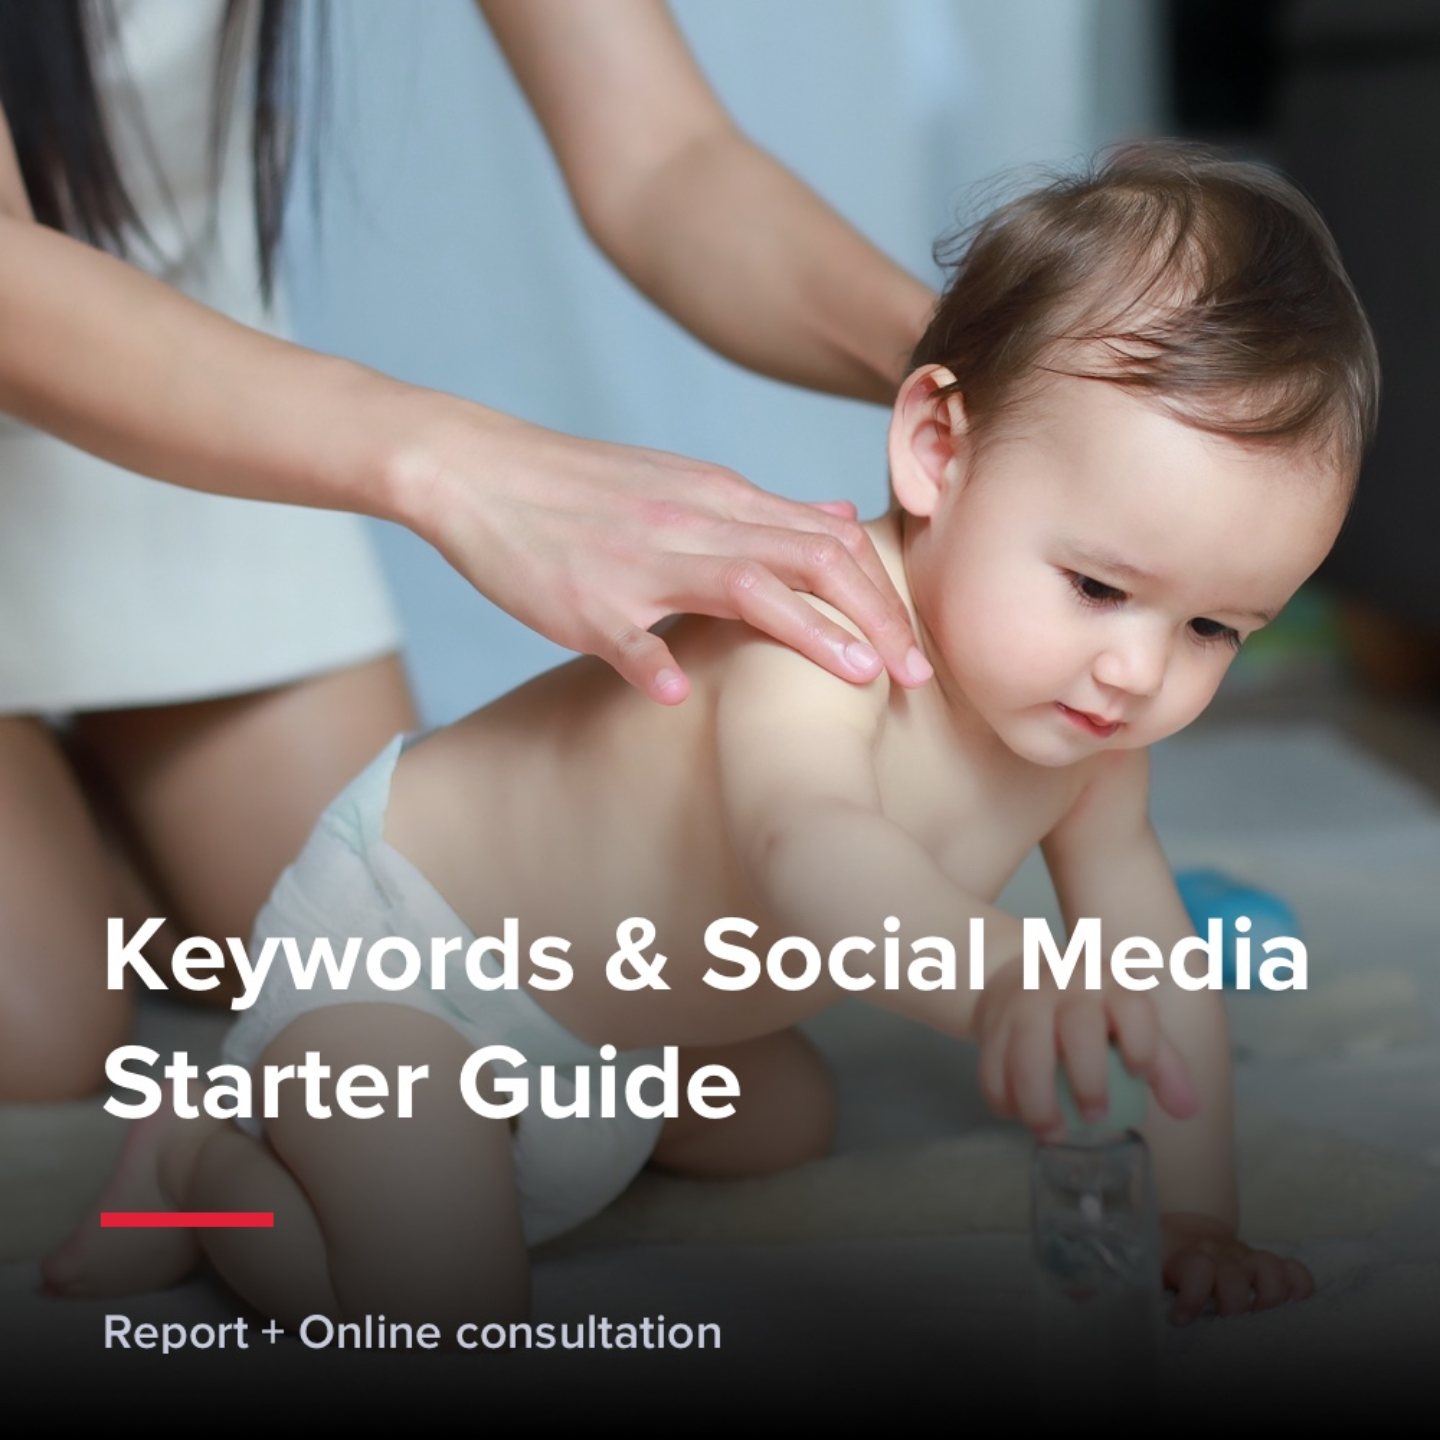 Keywords & Social Media Starter Guide - Baby Care